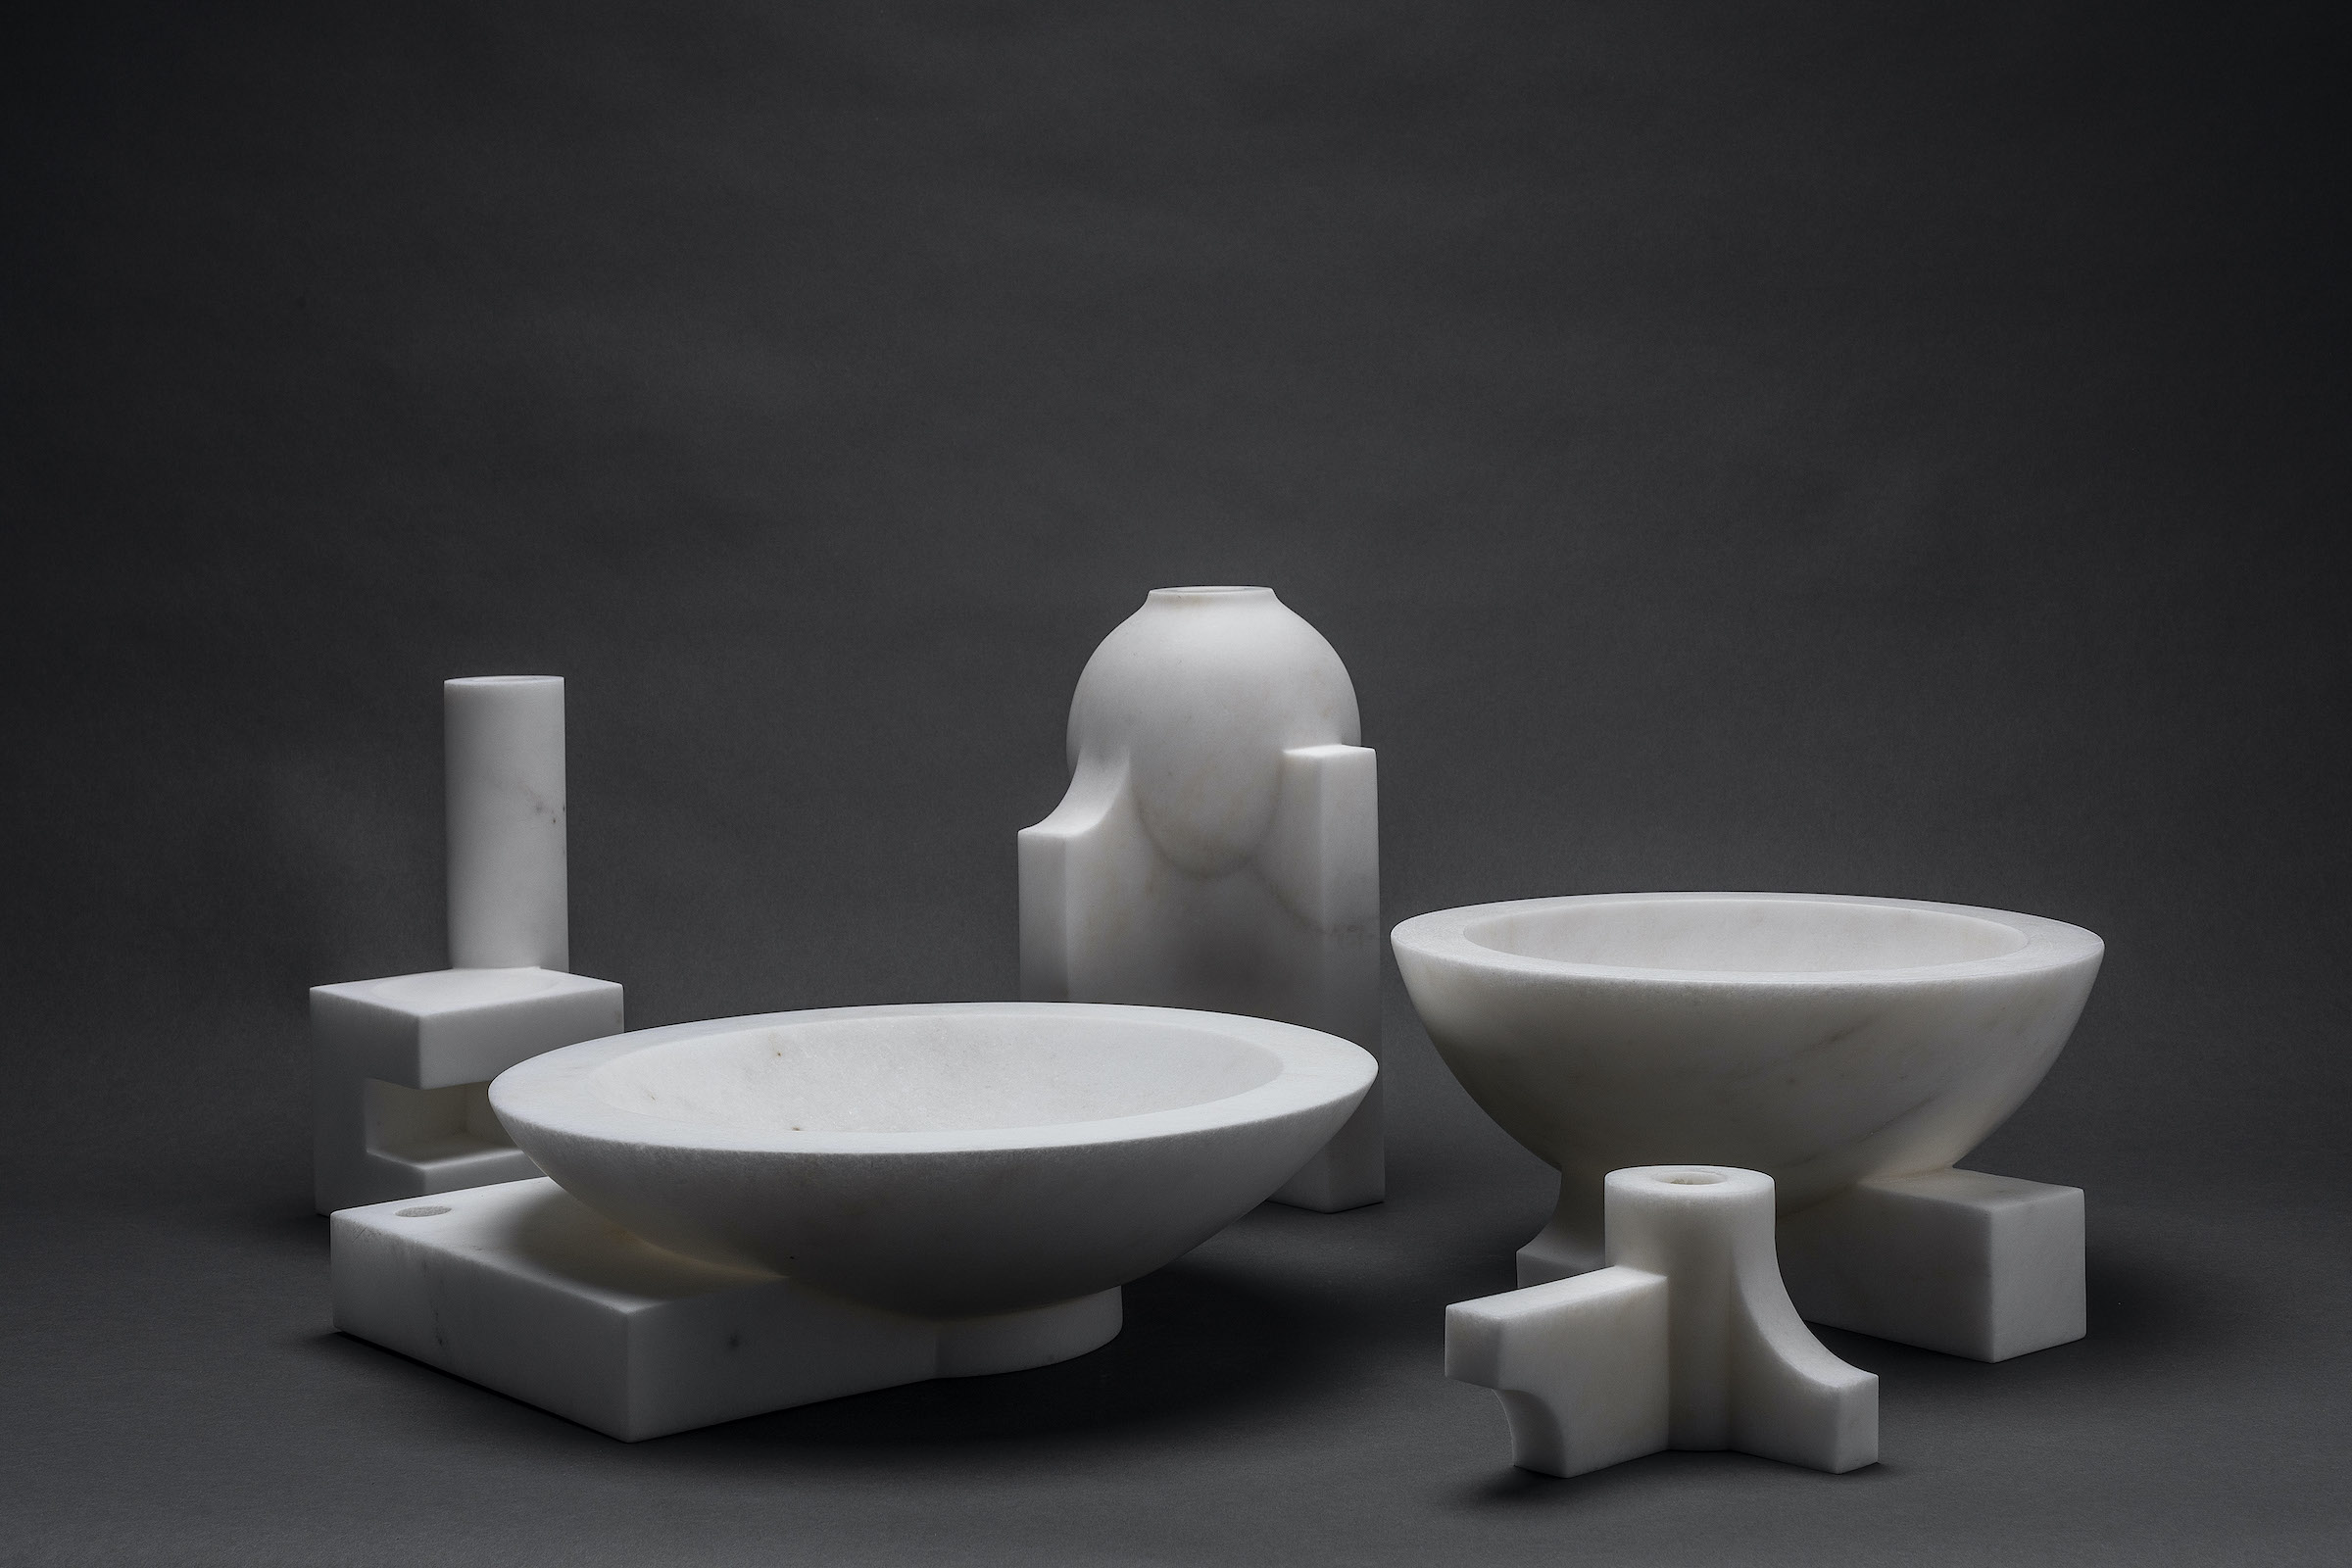 Galeana Collection by Jorge Diego Etienne